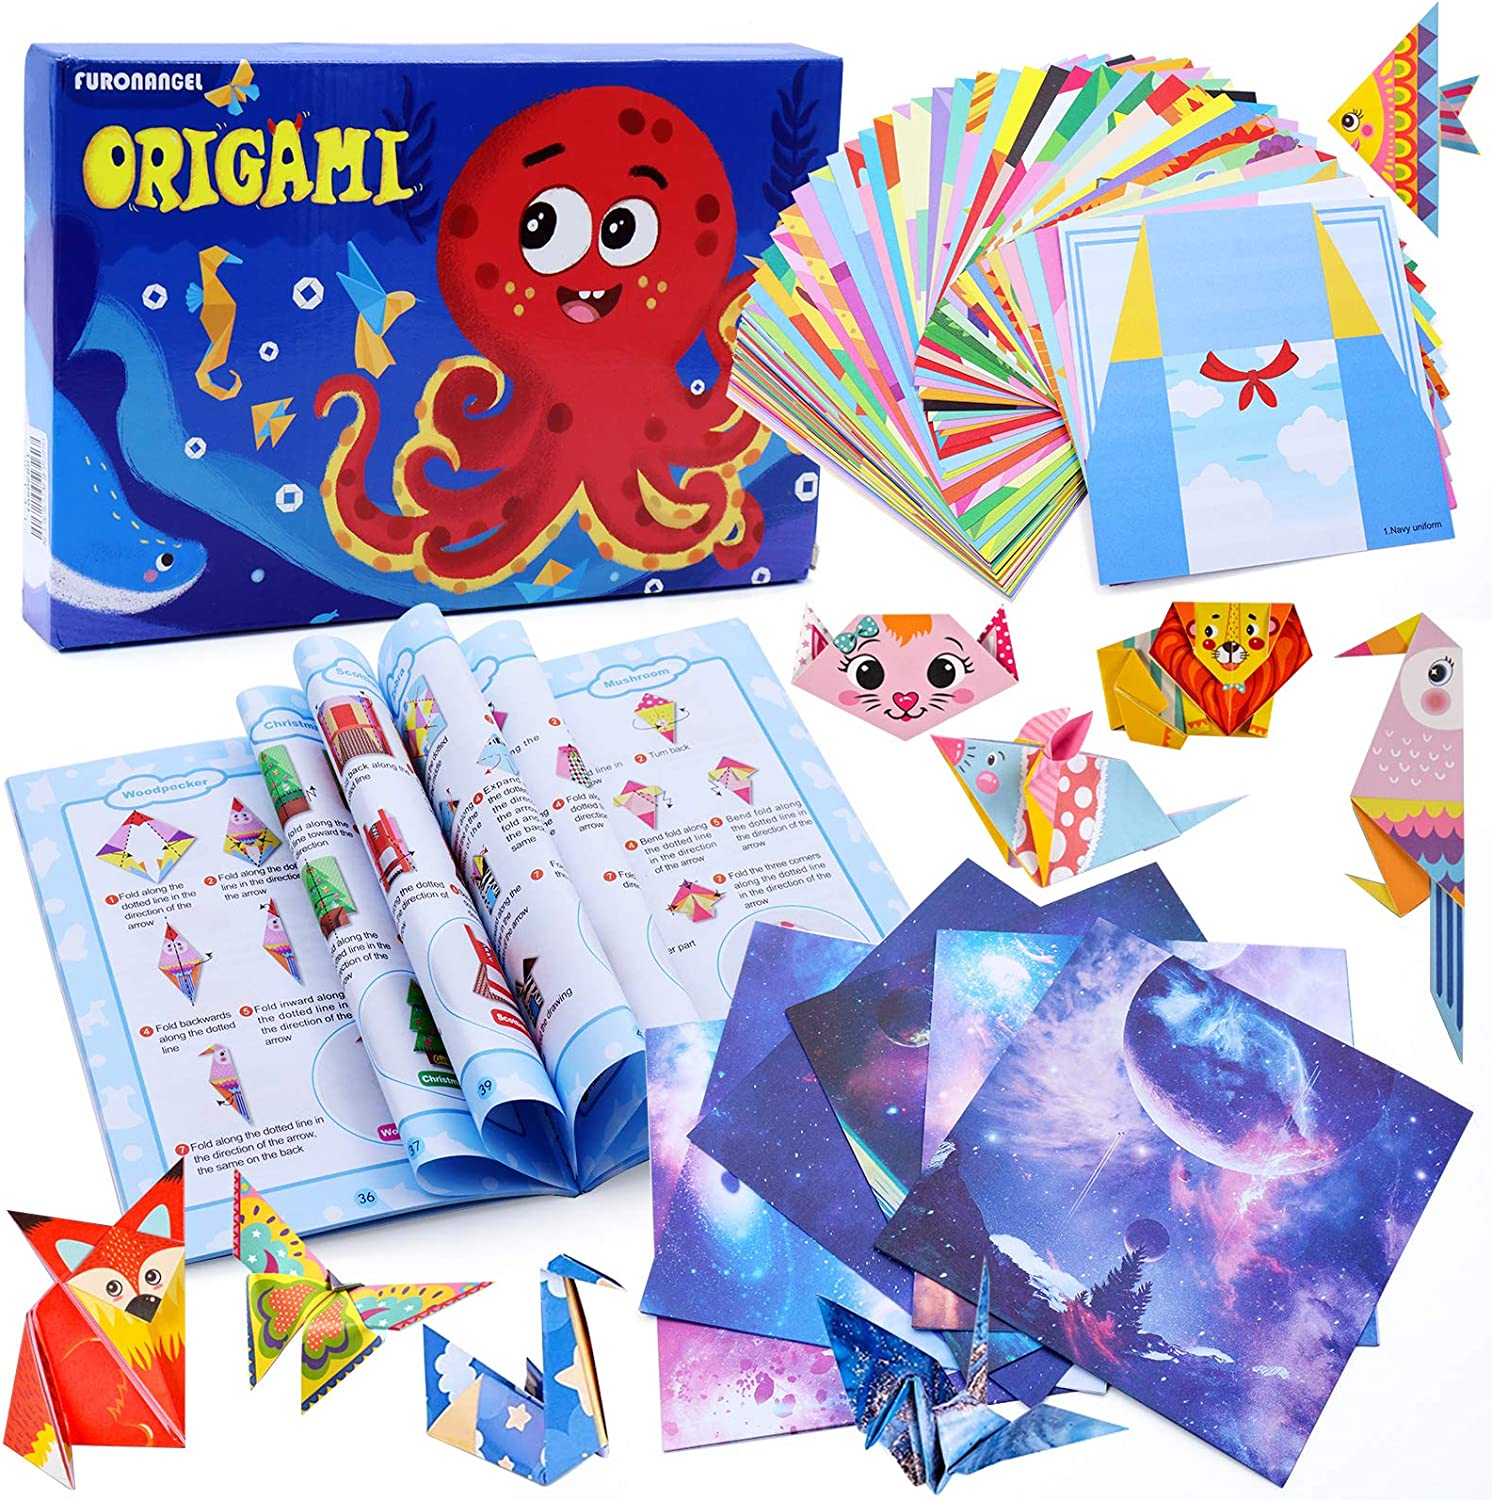 202 Double Sided Origami and 72 Origami Project Craft Instruction ...